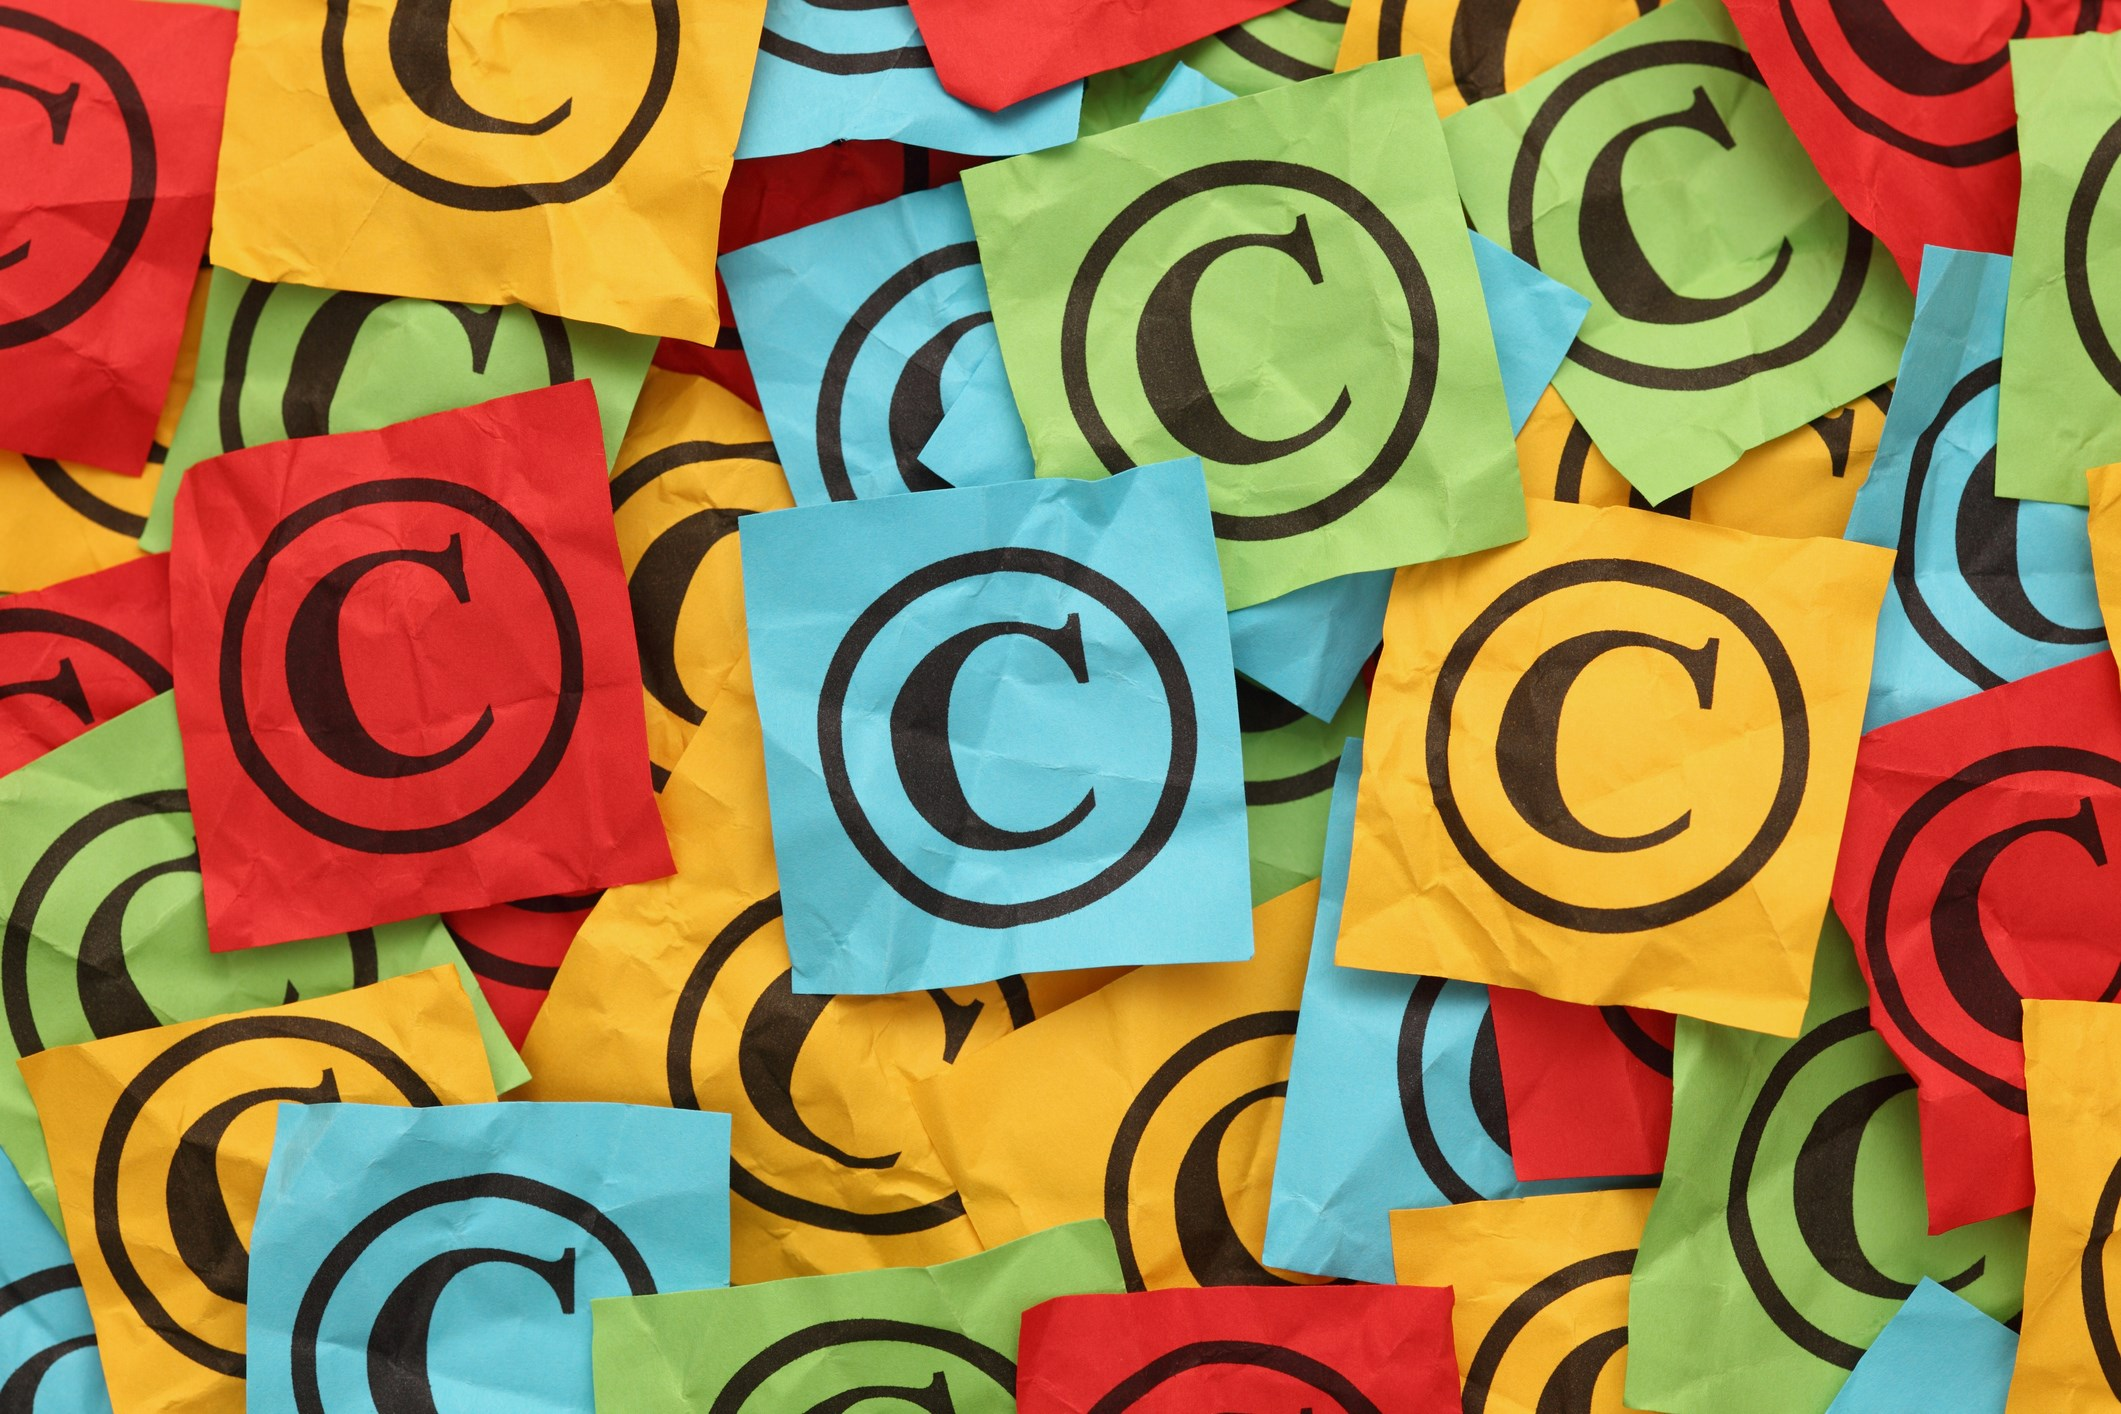 Take your intellectual property seriously